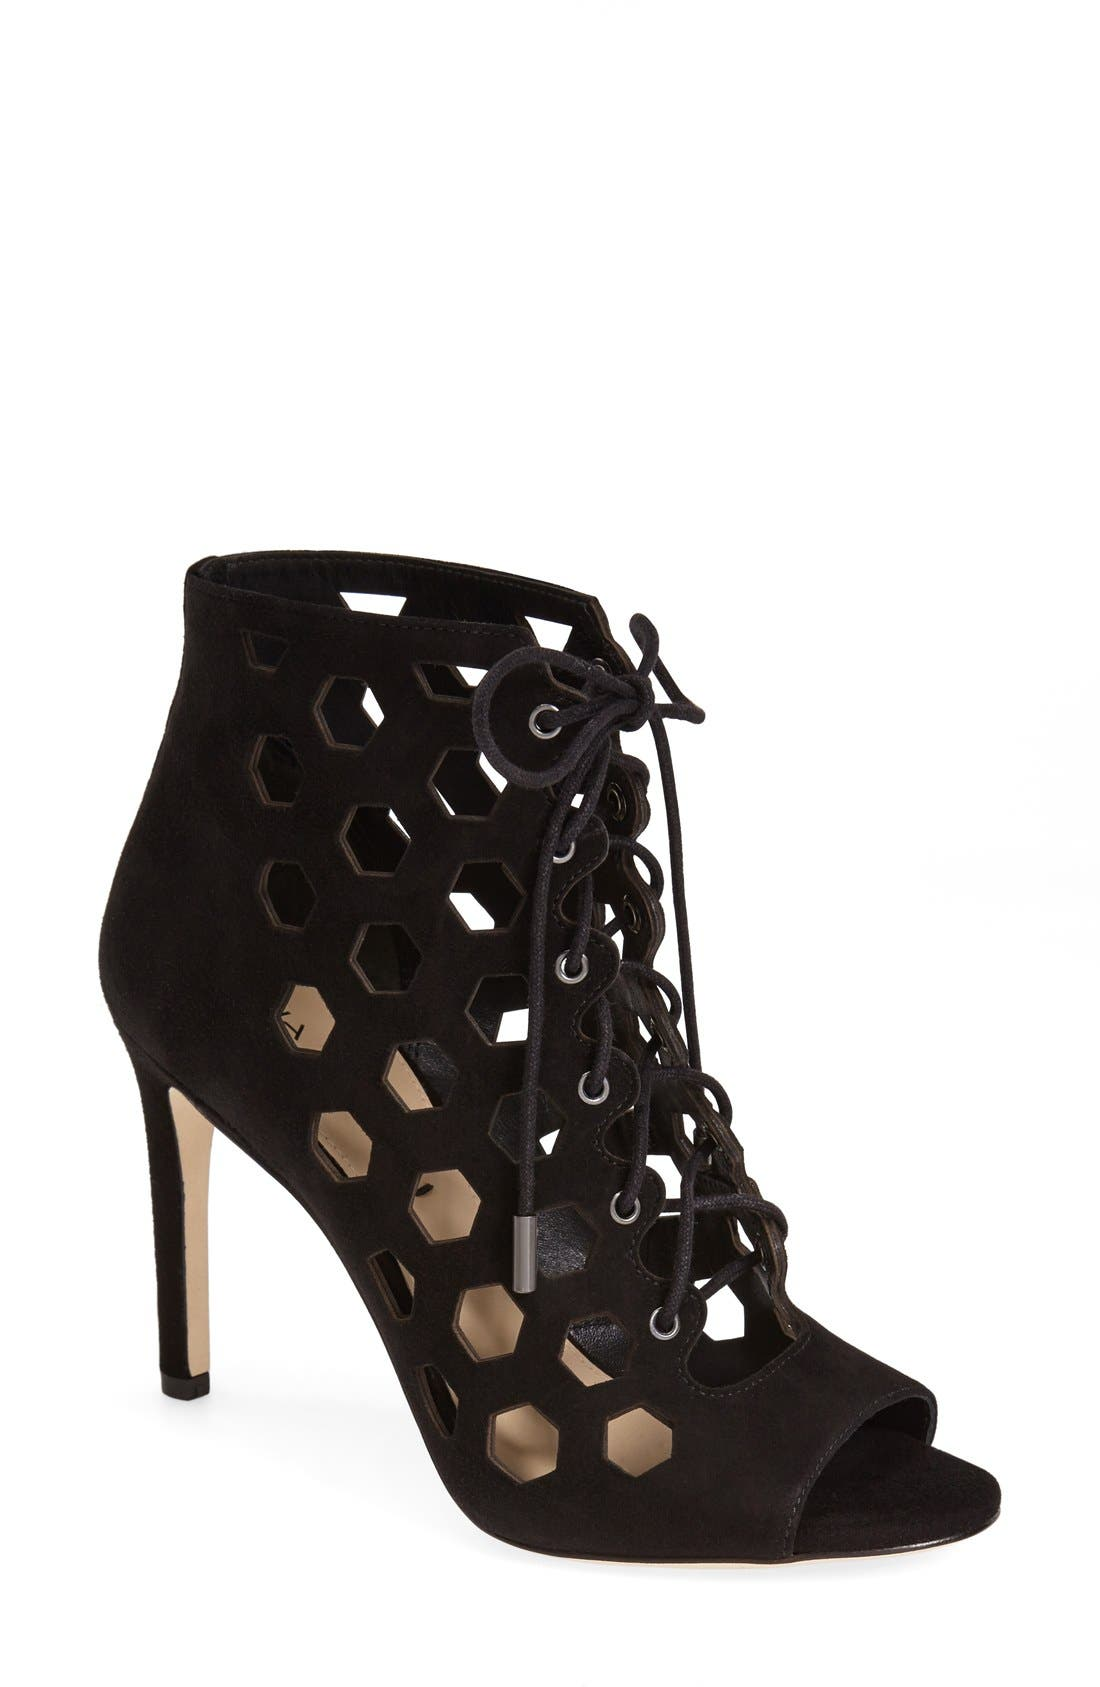 Main Image - Via Spiga 'Elouise' Lace-Up Bootie (Women)